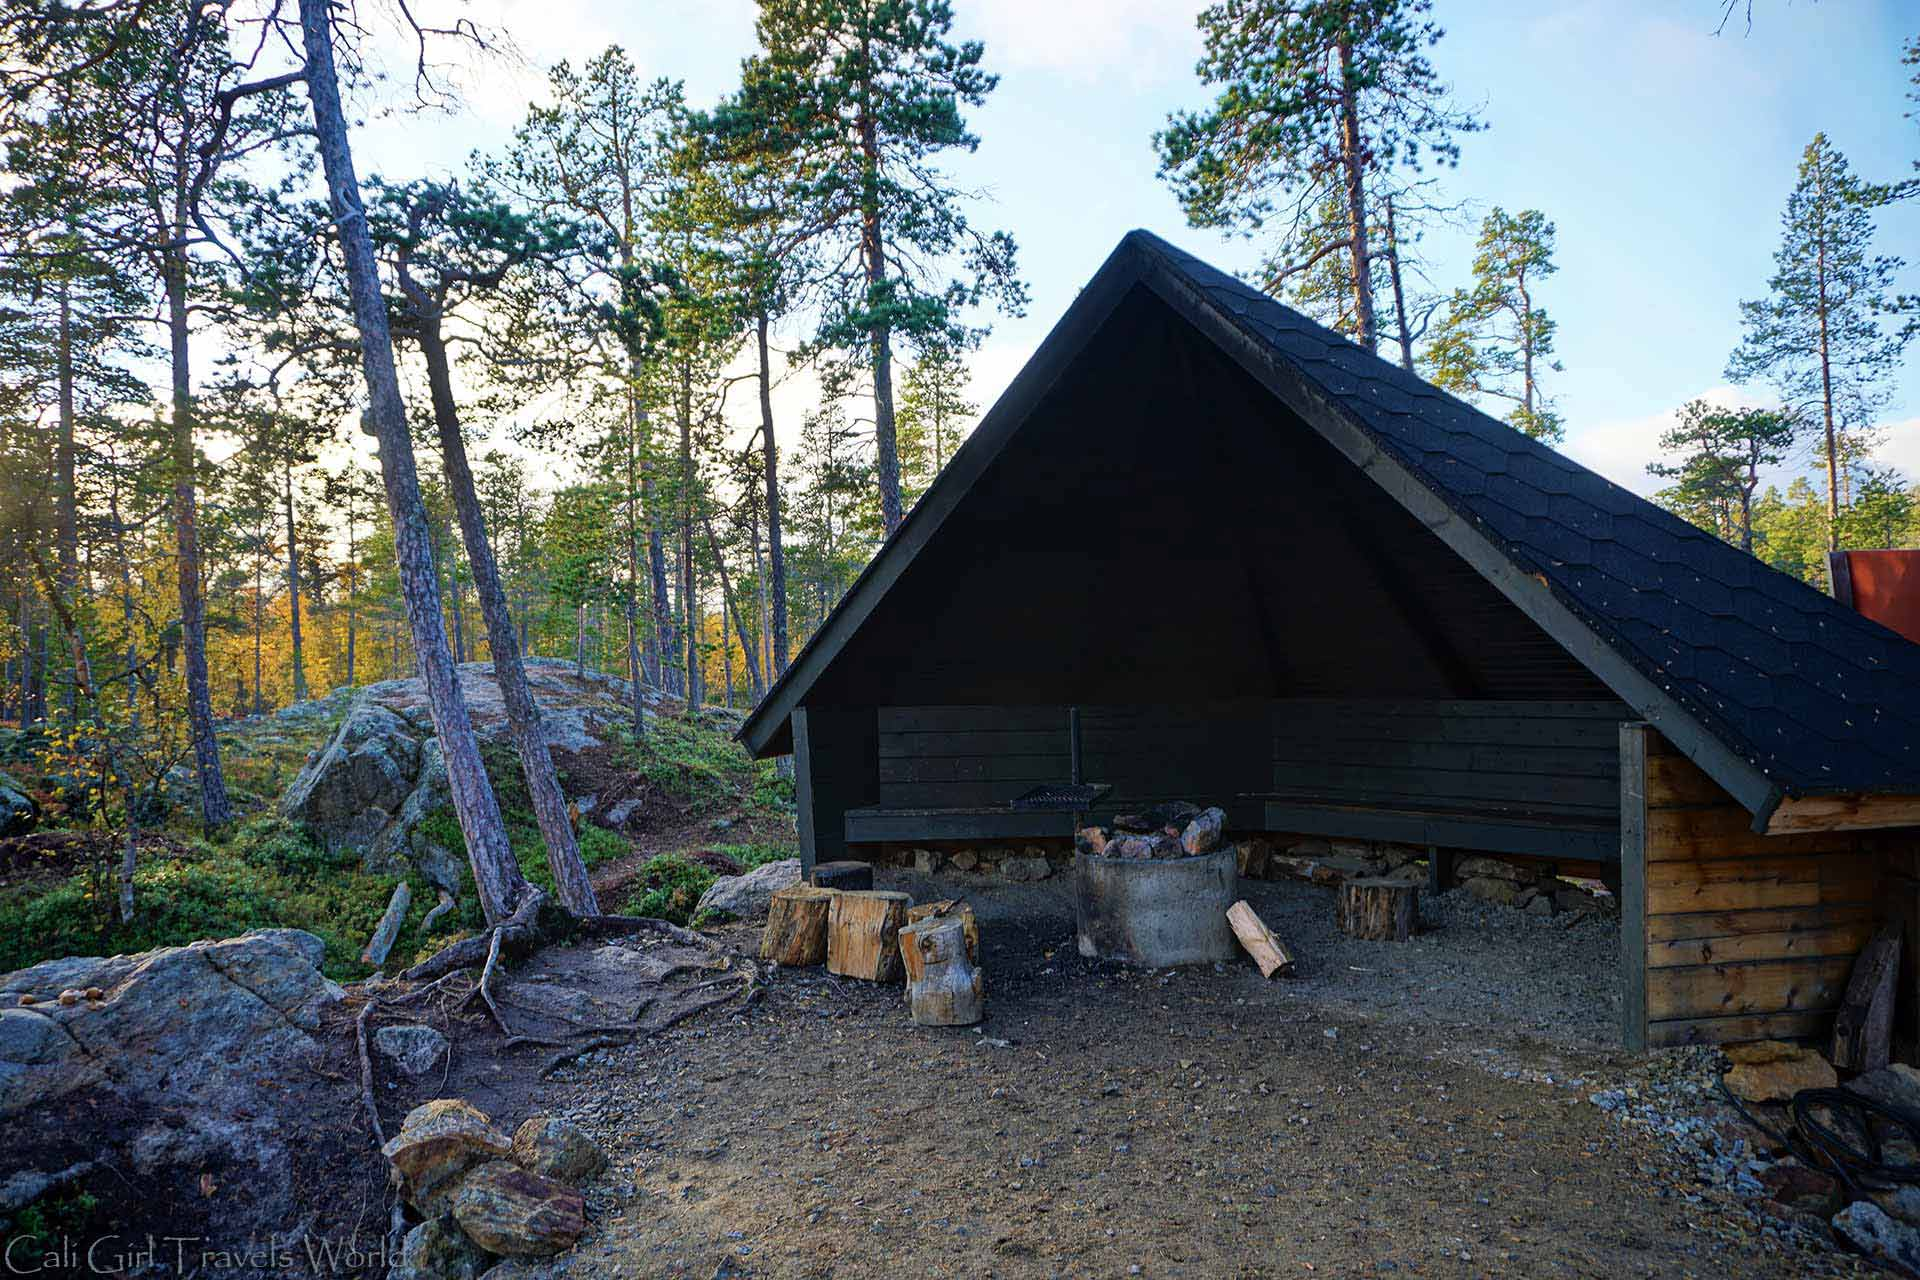 Wilderness hut shelter with a fire pit along a nature walk in Inari, Lapland.